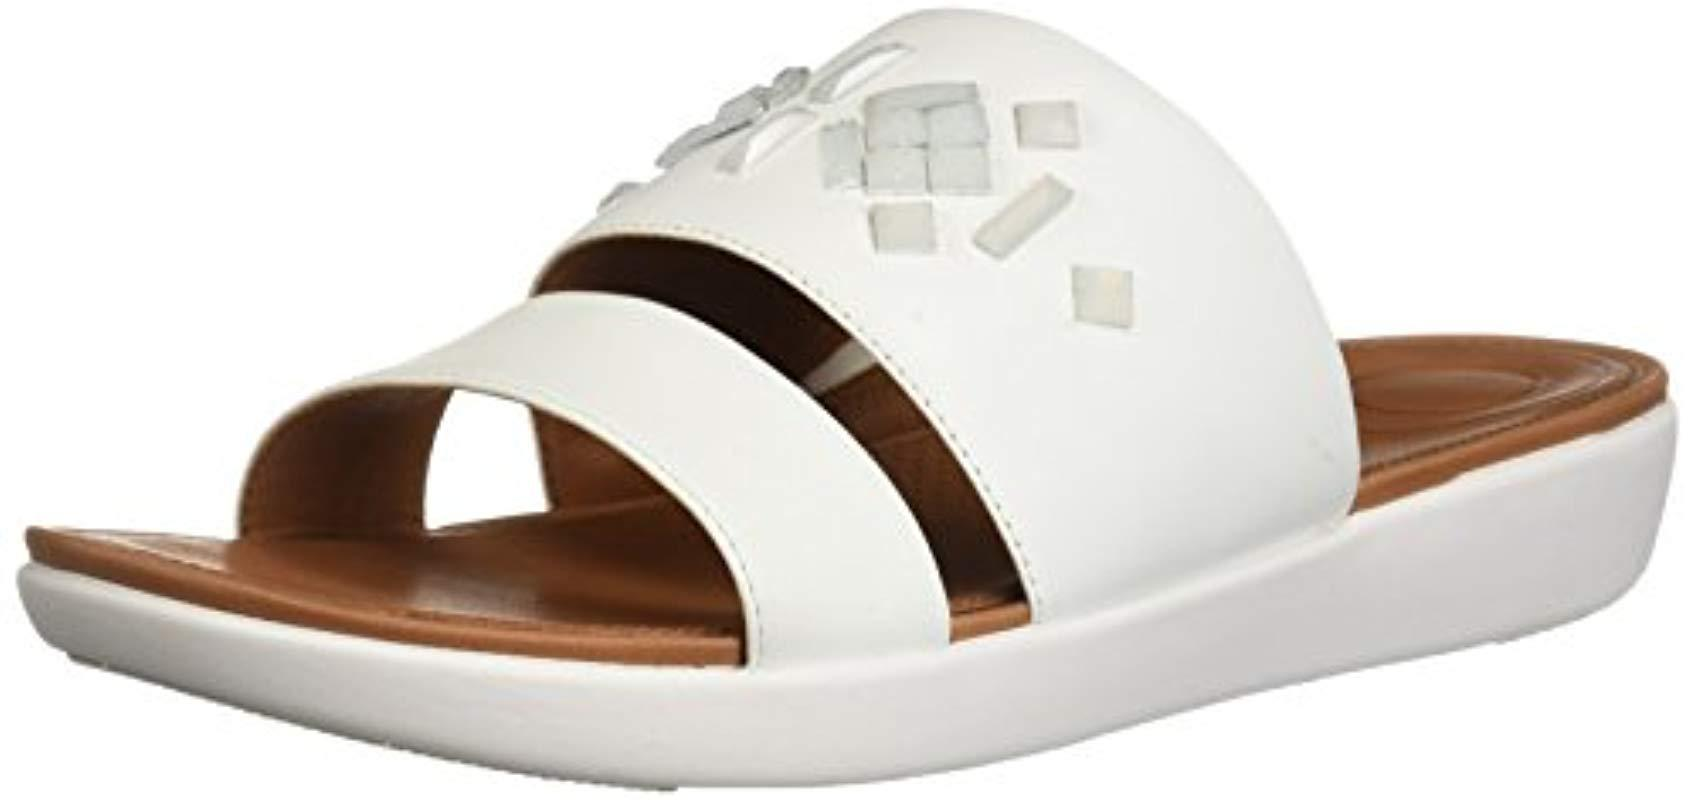 3183a0d0c2f Lyst - Fitflop Delta Leather Slide Sandals-crystal in White - Save 1%